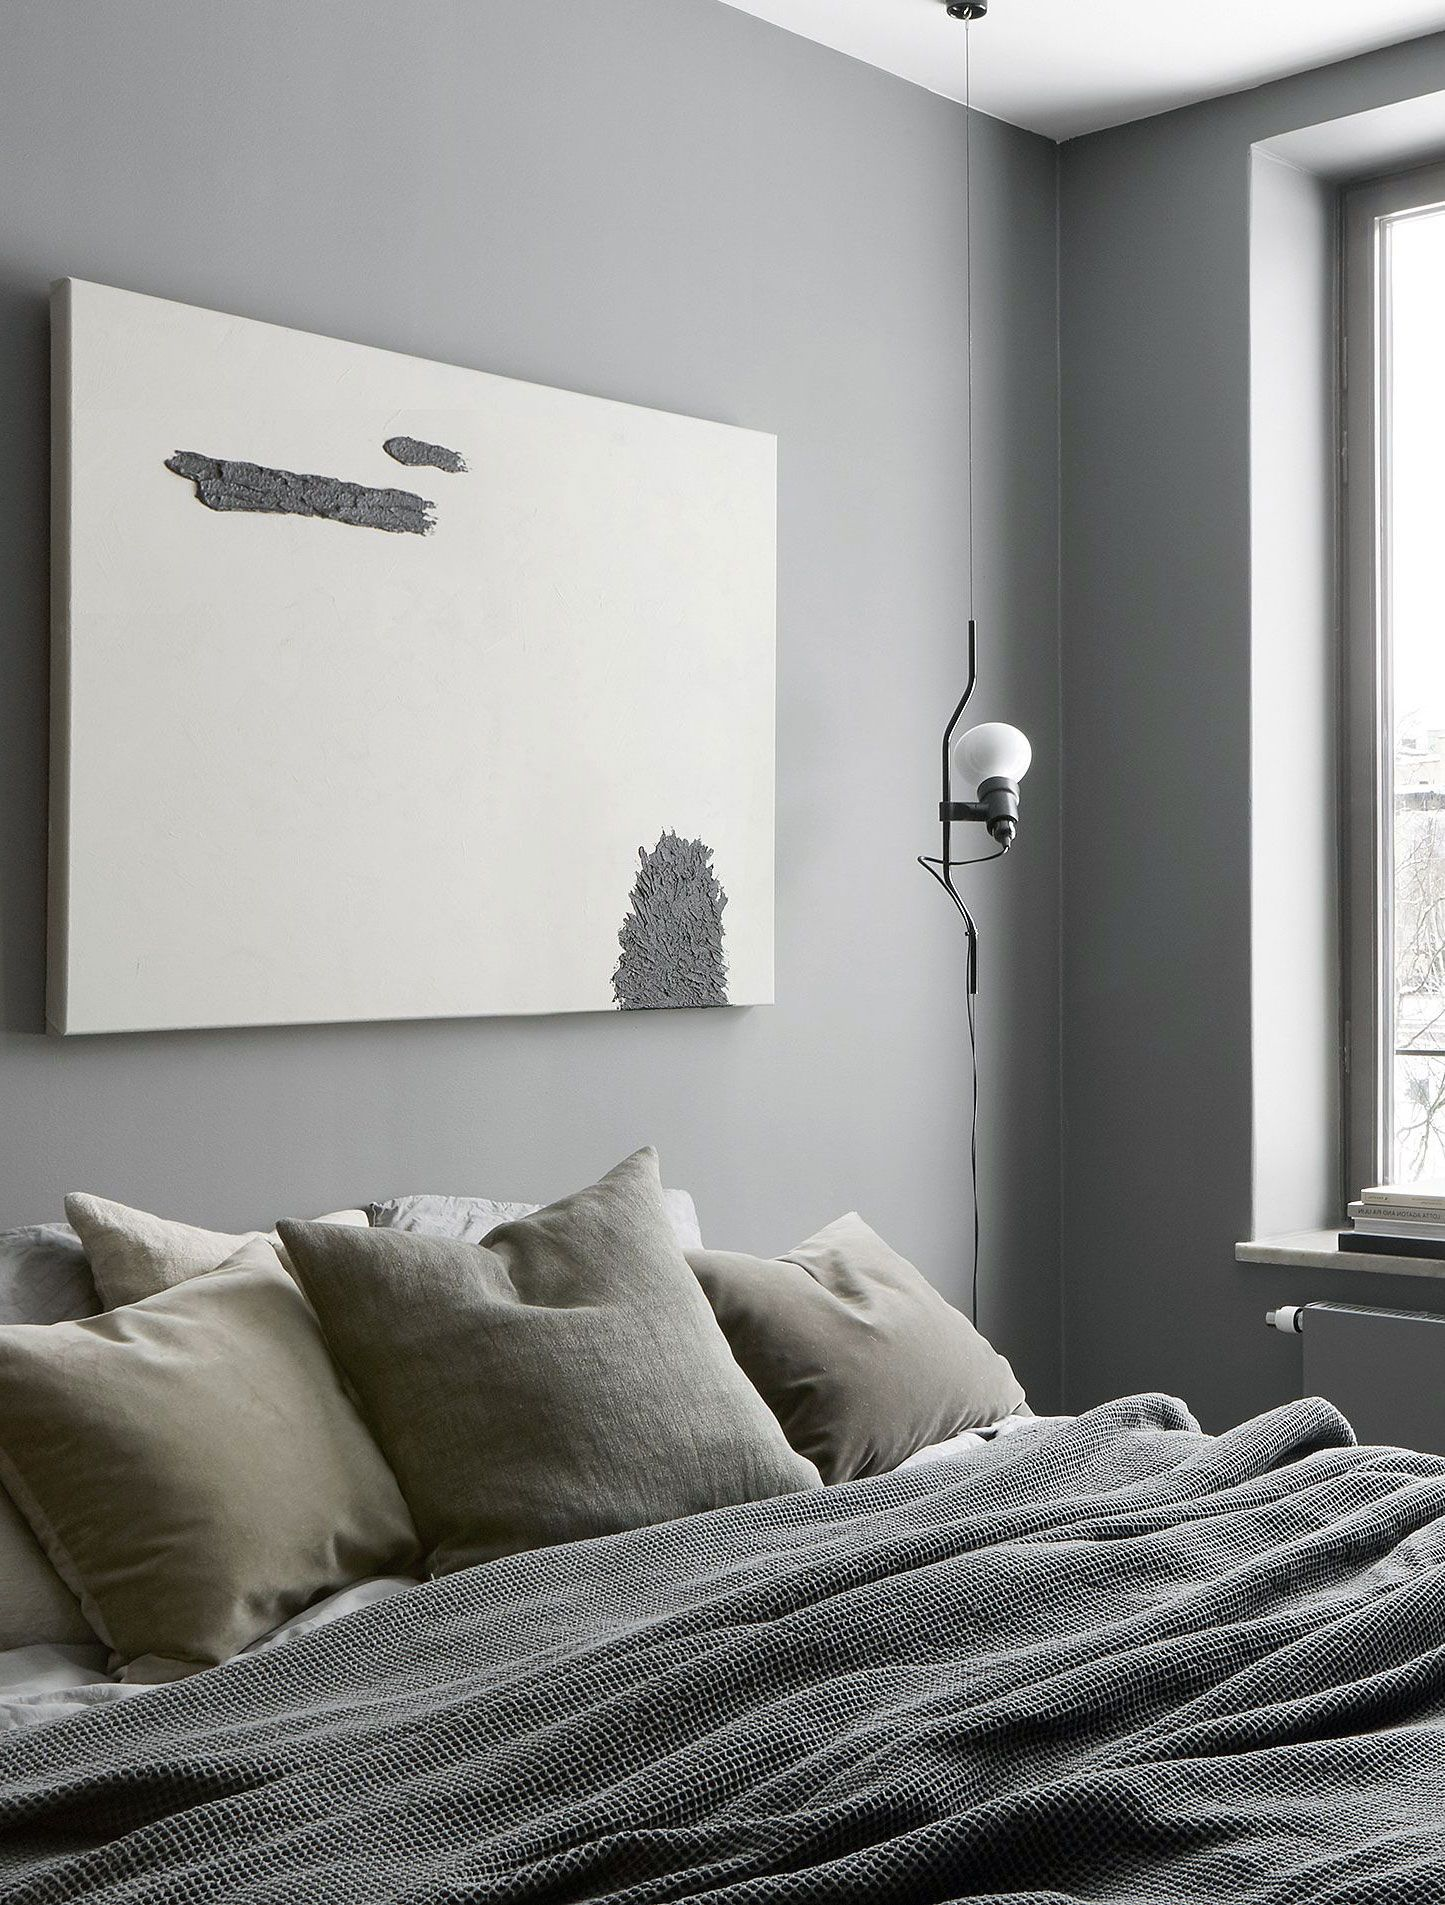 27 Grey Scandinavian Interior Bedroom Ideas You Must Try In 2020 Scandinavian Interior Bedroom Scandinavian Interior Scandinavian Design Bedroom